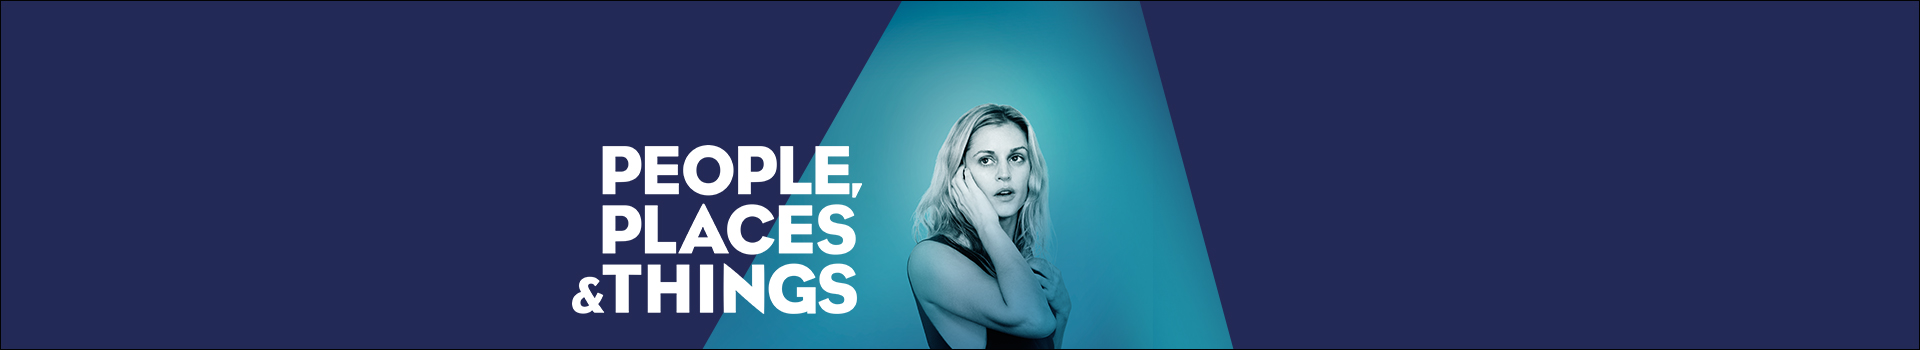 People, Places and Things banner image